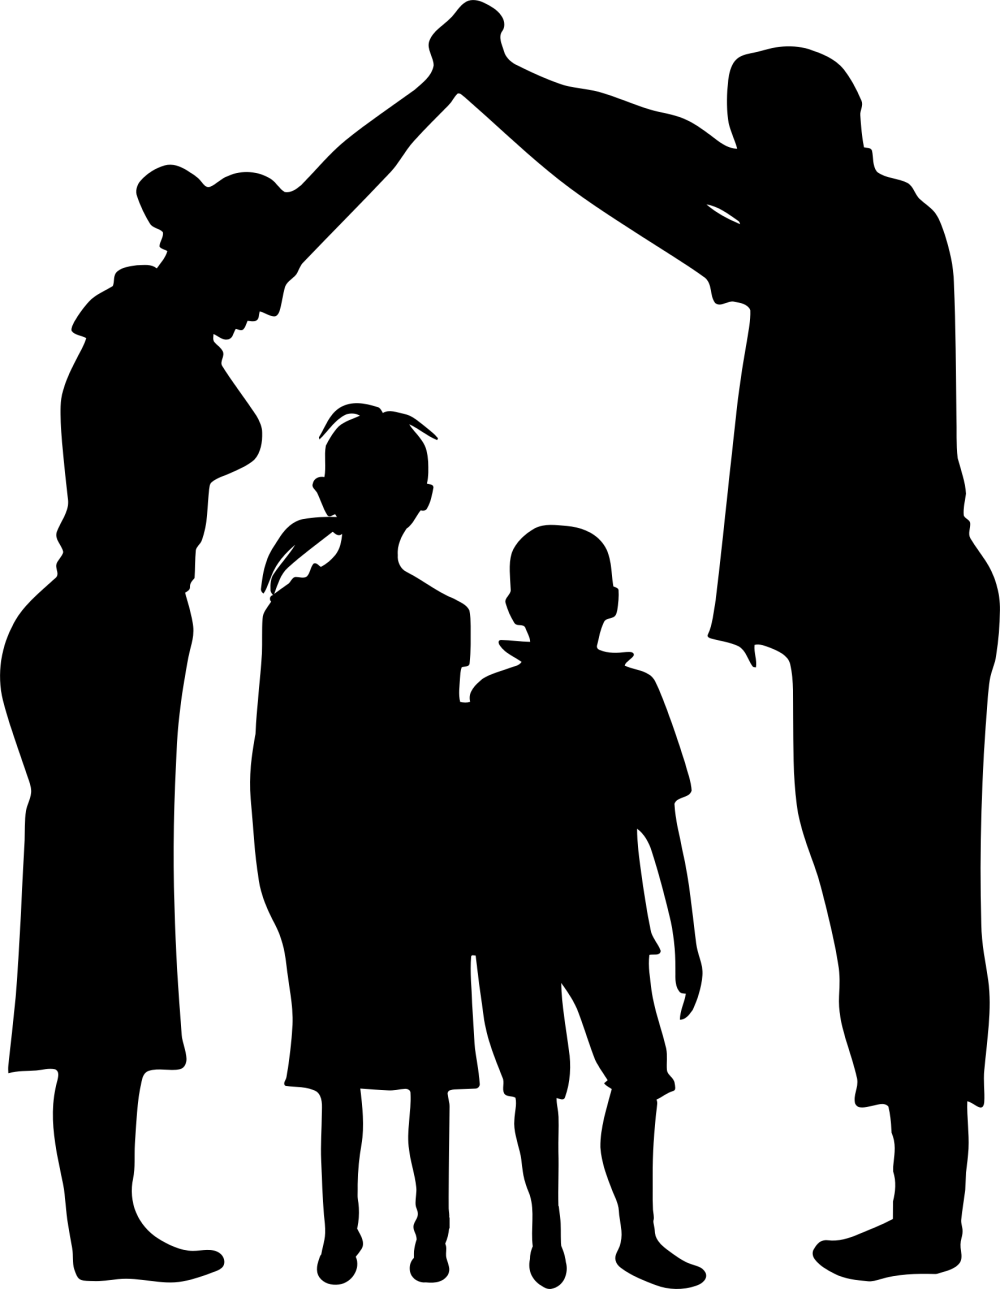 Family-Shelter-Minus-Ground-Silhouette-2400px